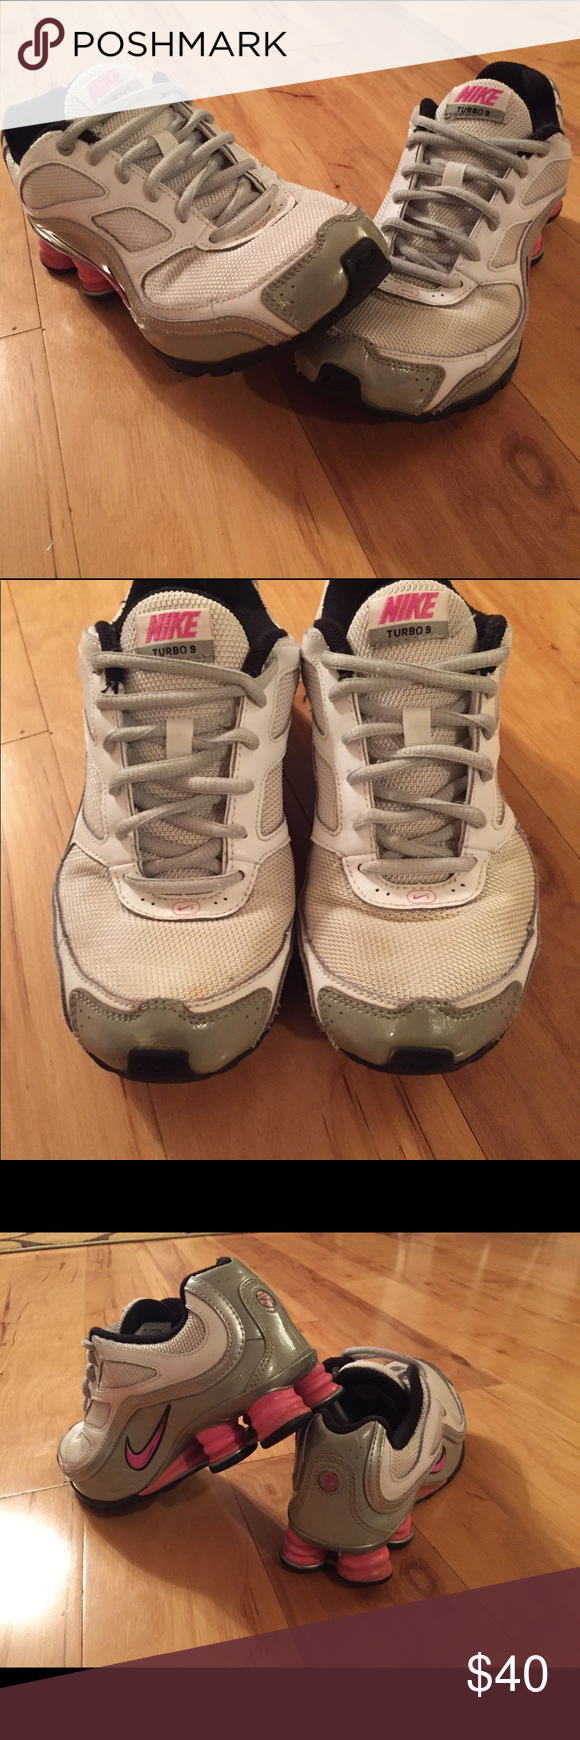 Girls Nike Shox Turbo 9 Metallic Silver Grey Pink Nike 366890-161 Very nice  used condition. No rips c33d0a56c